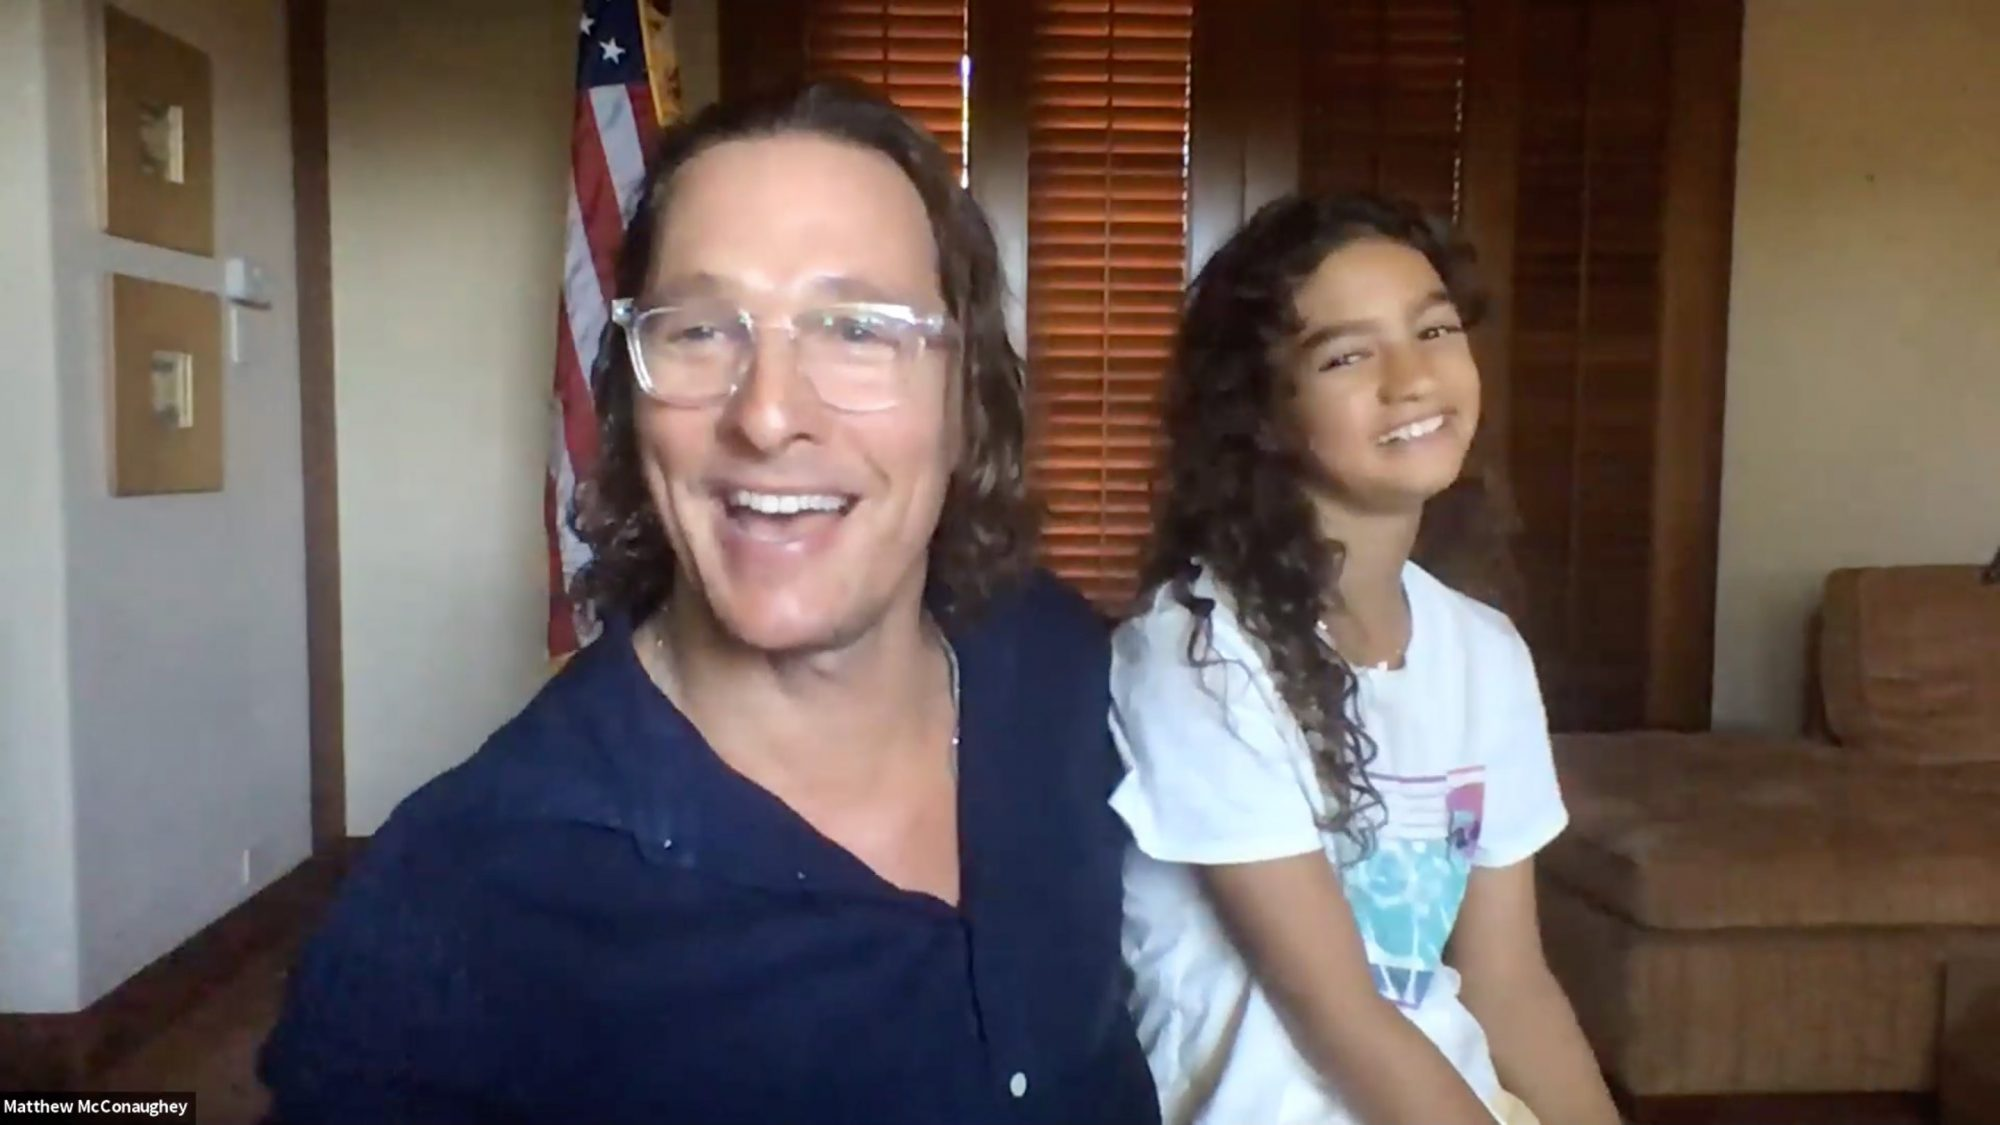 Matthew McConaughey's Daughter Vida, 10, Adorably Jumps in on His Interview and Dishes on Dad